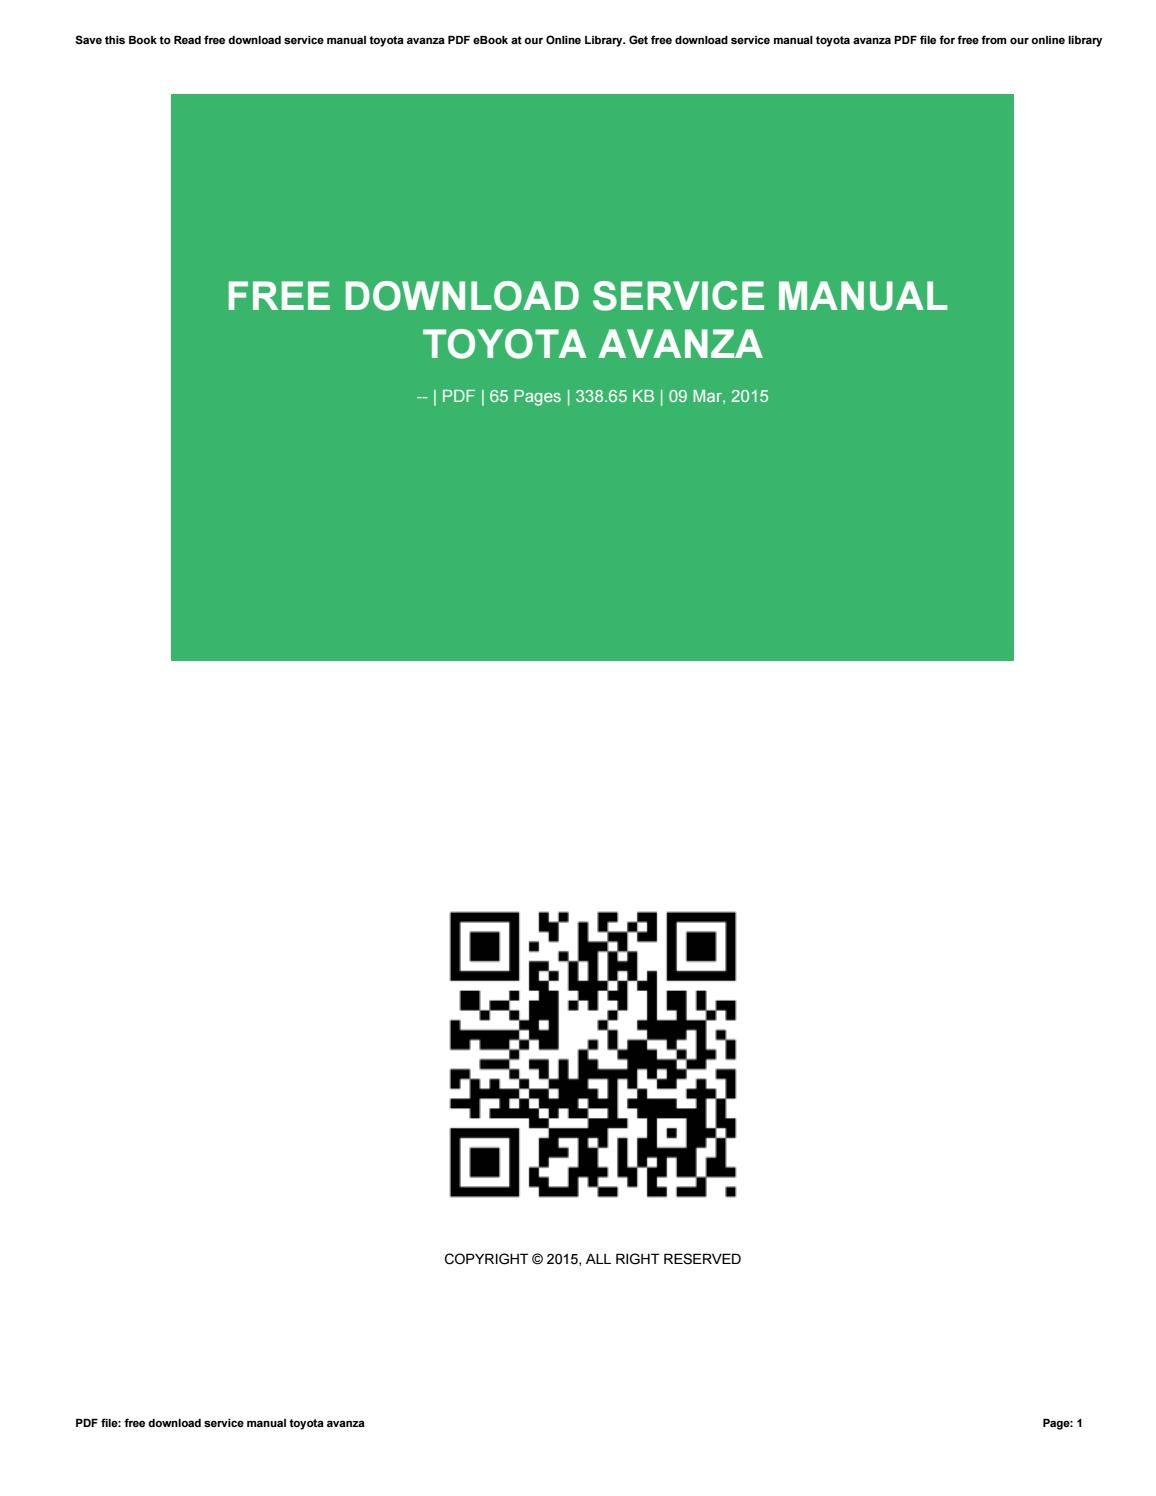 Free Download Service Manual Toyota Avanza By Asm230 Issuu